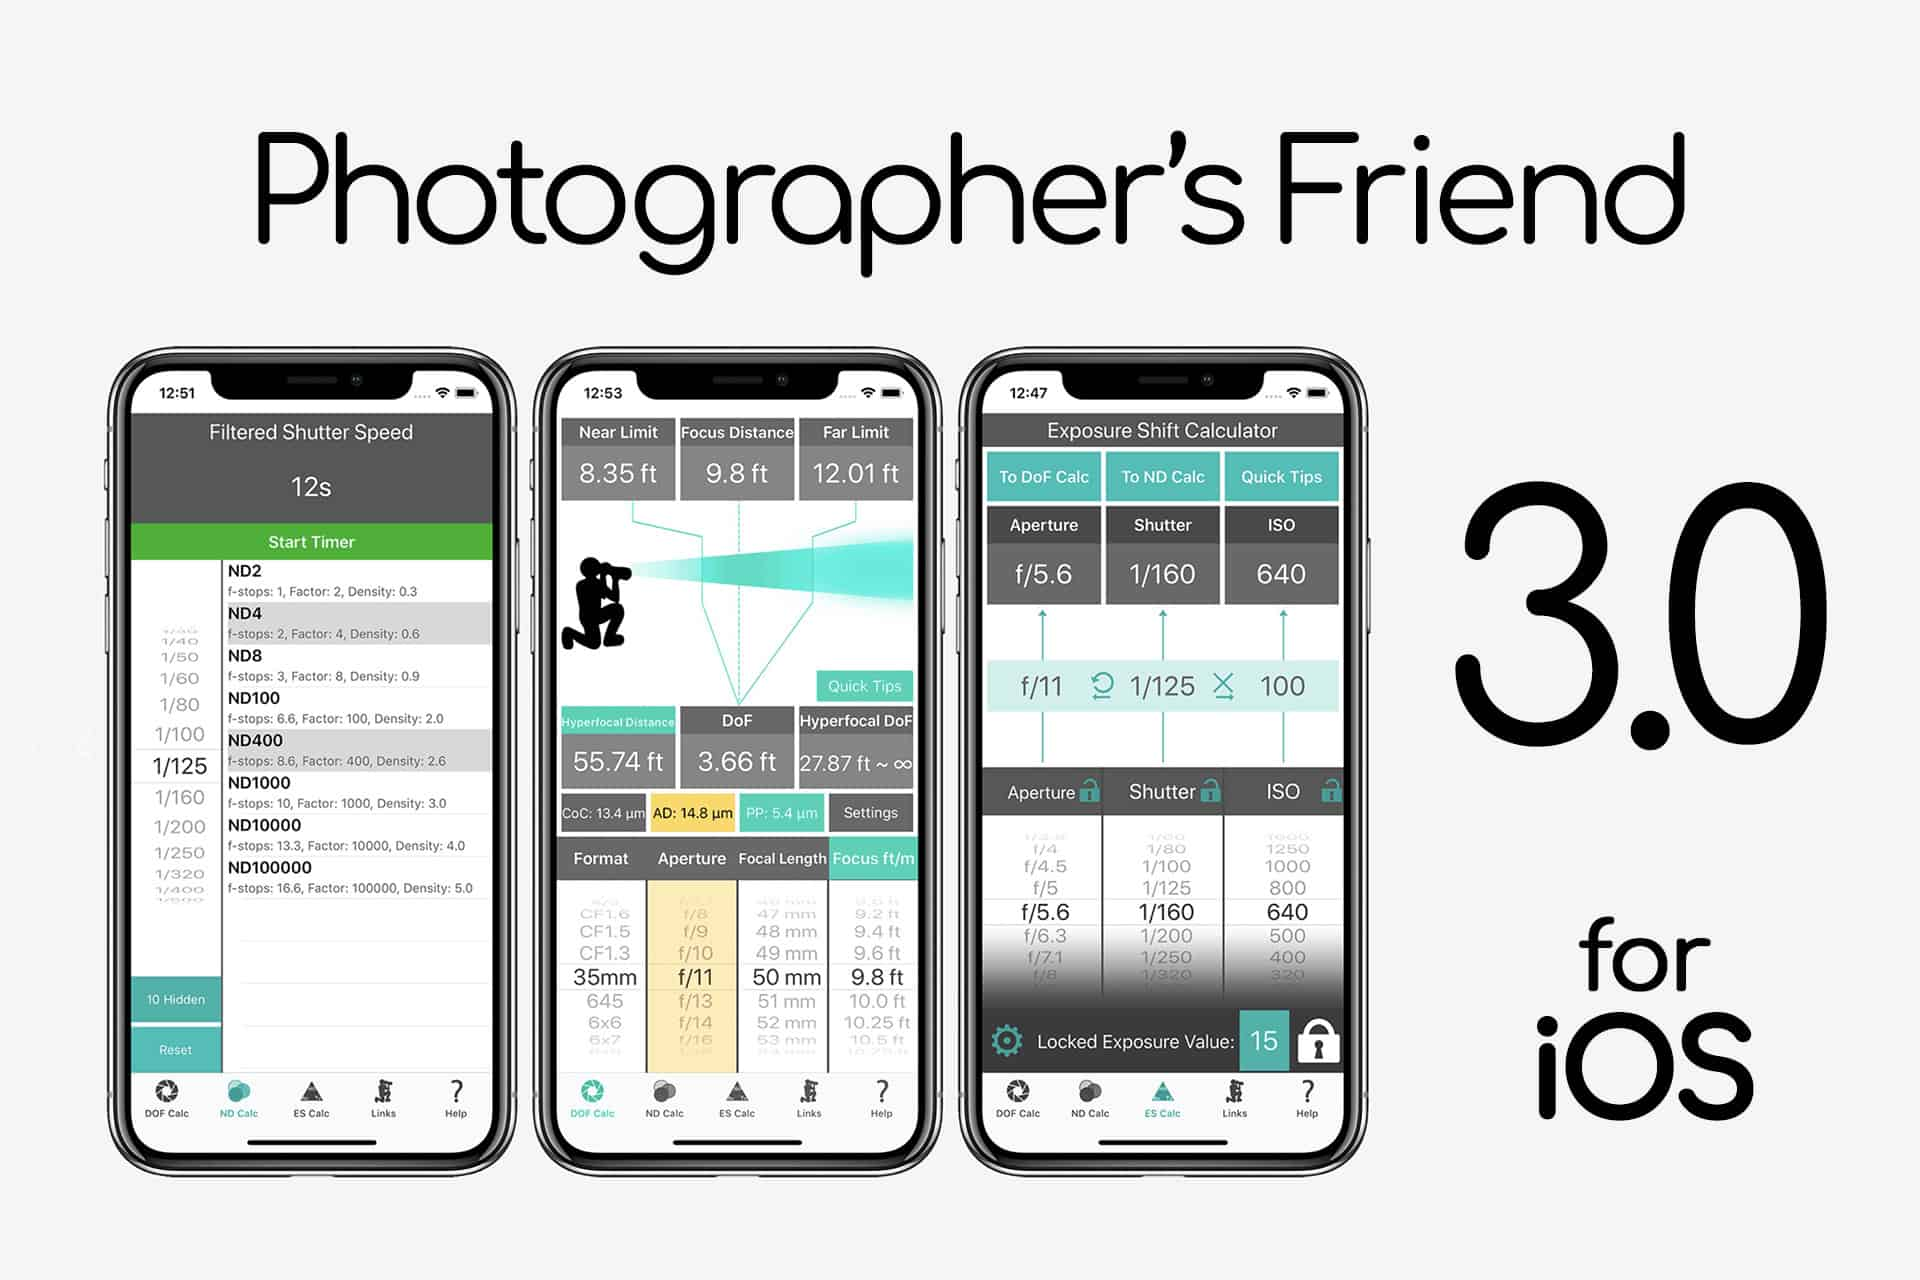 Photographer's Friend 3.0